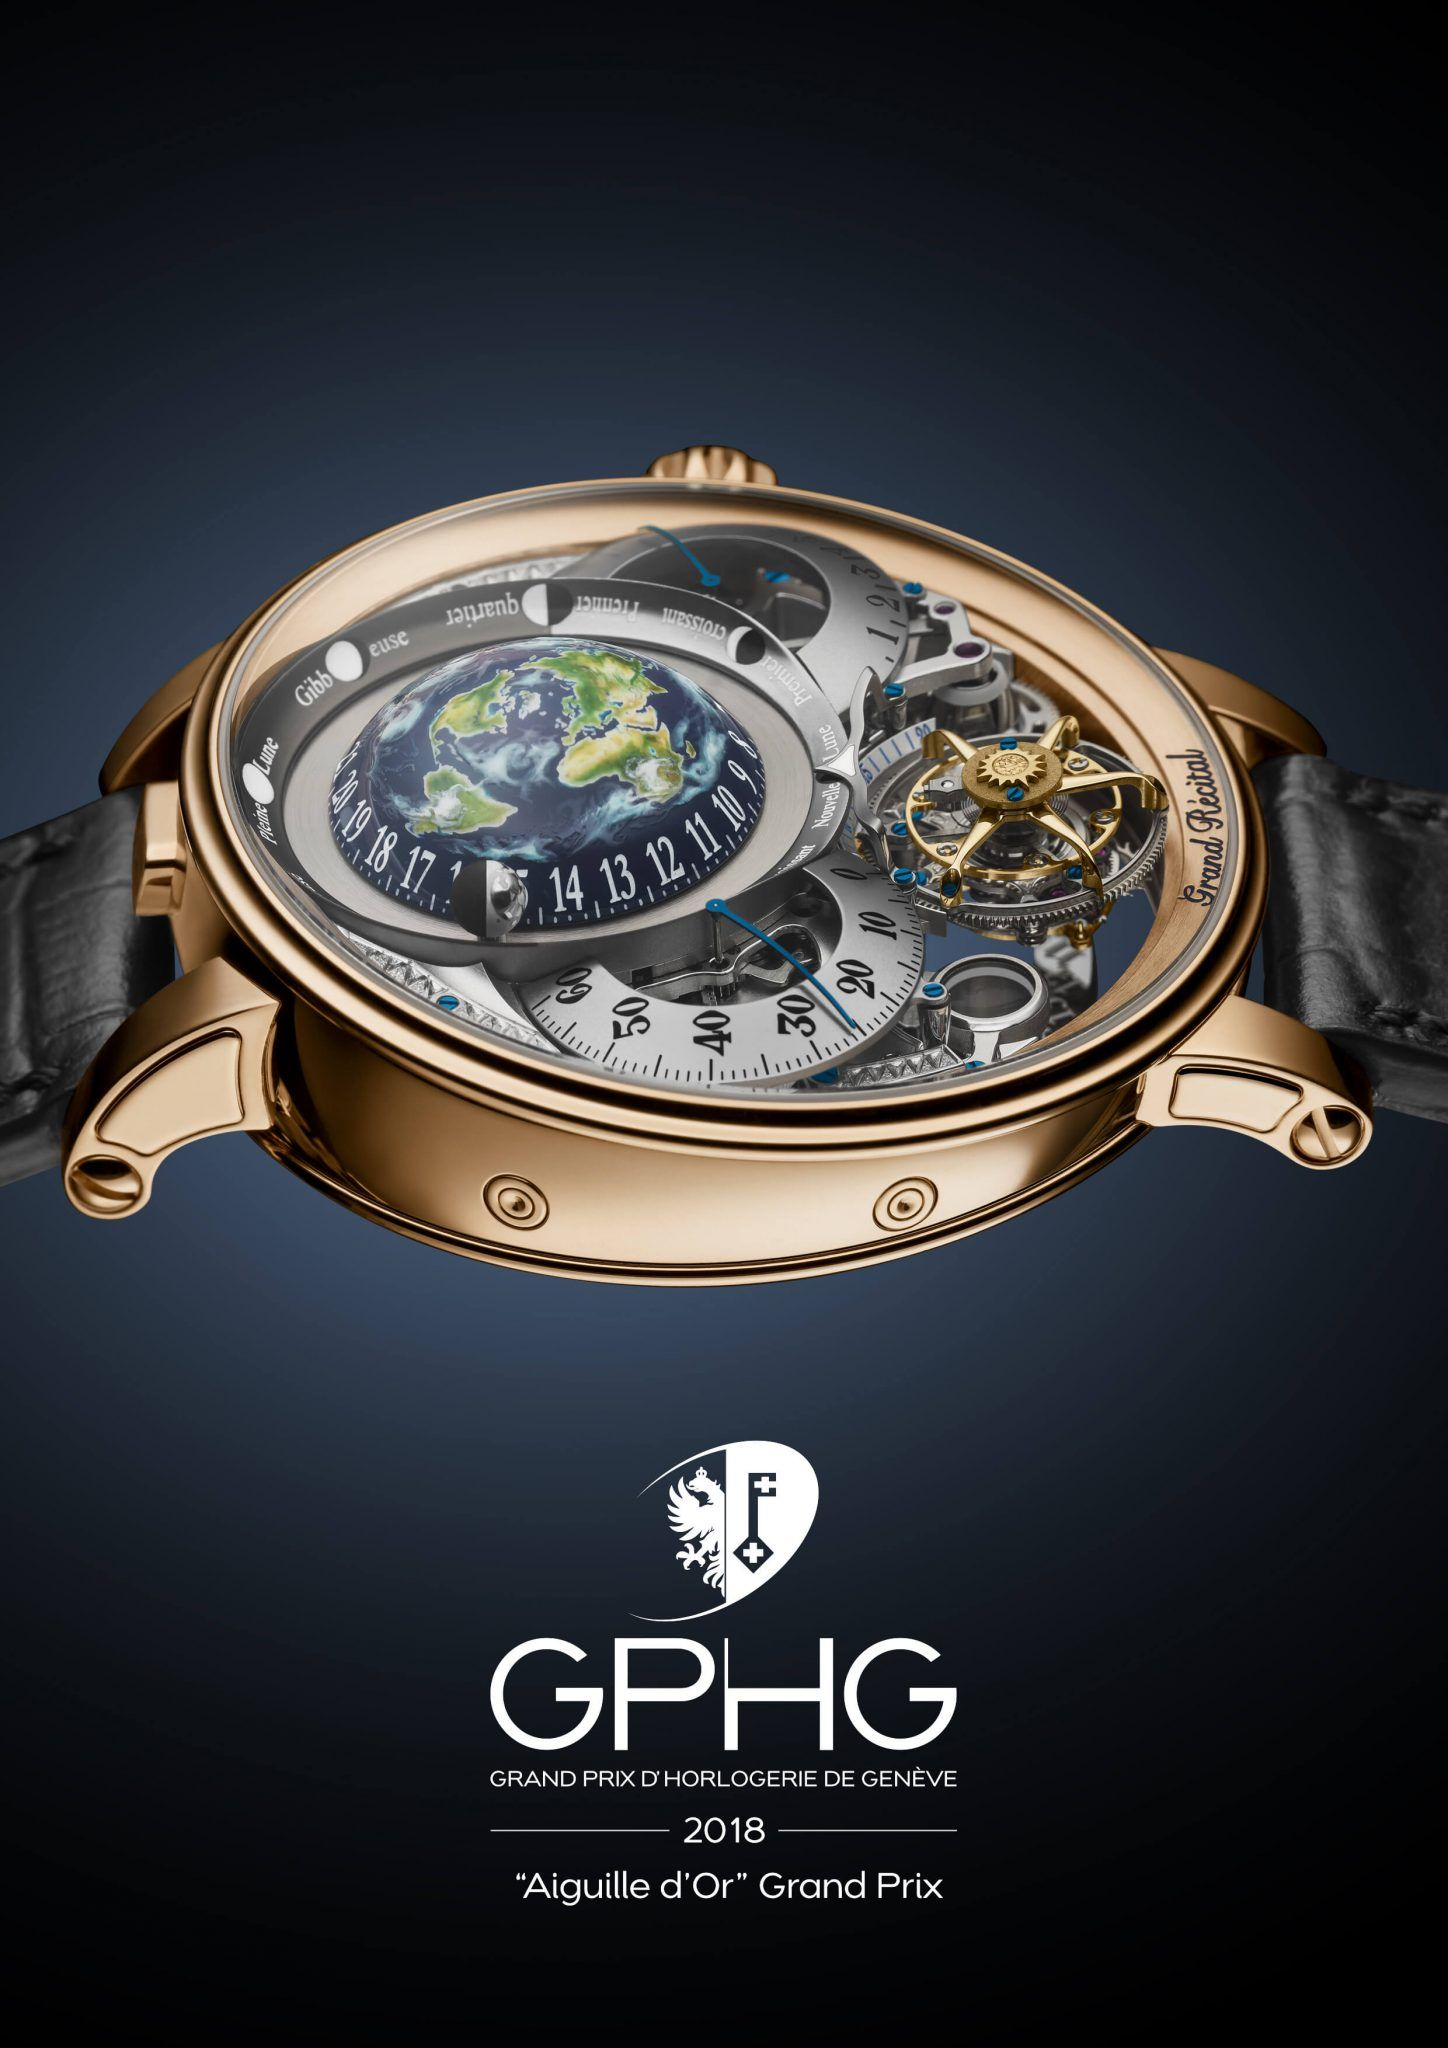 Bovet Grand Recital Aiguille d'Or blog debajo del reloj